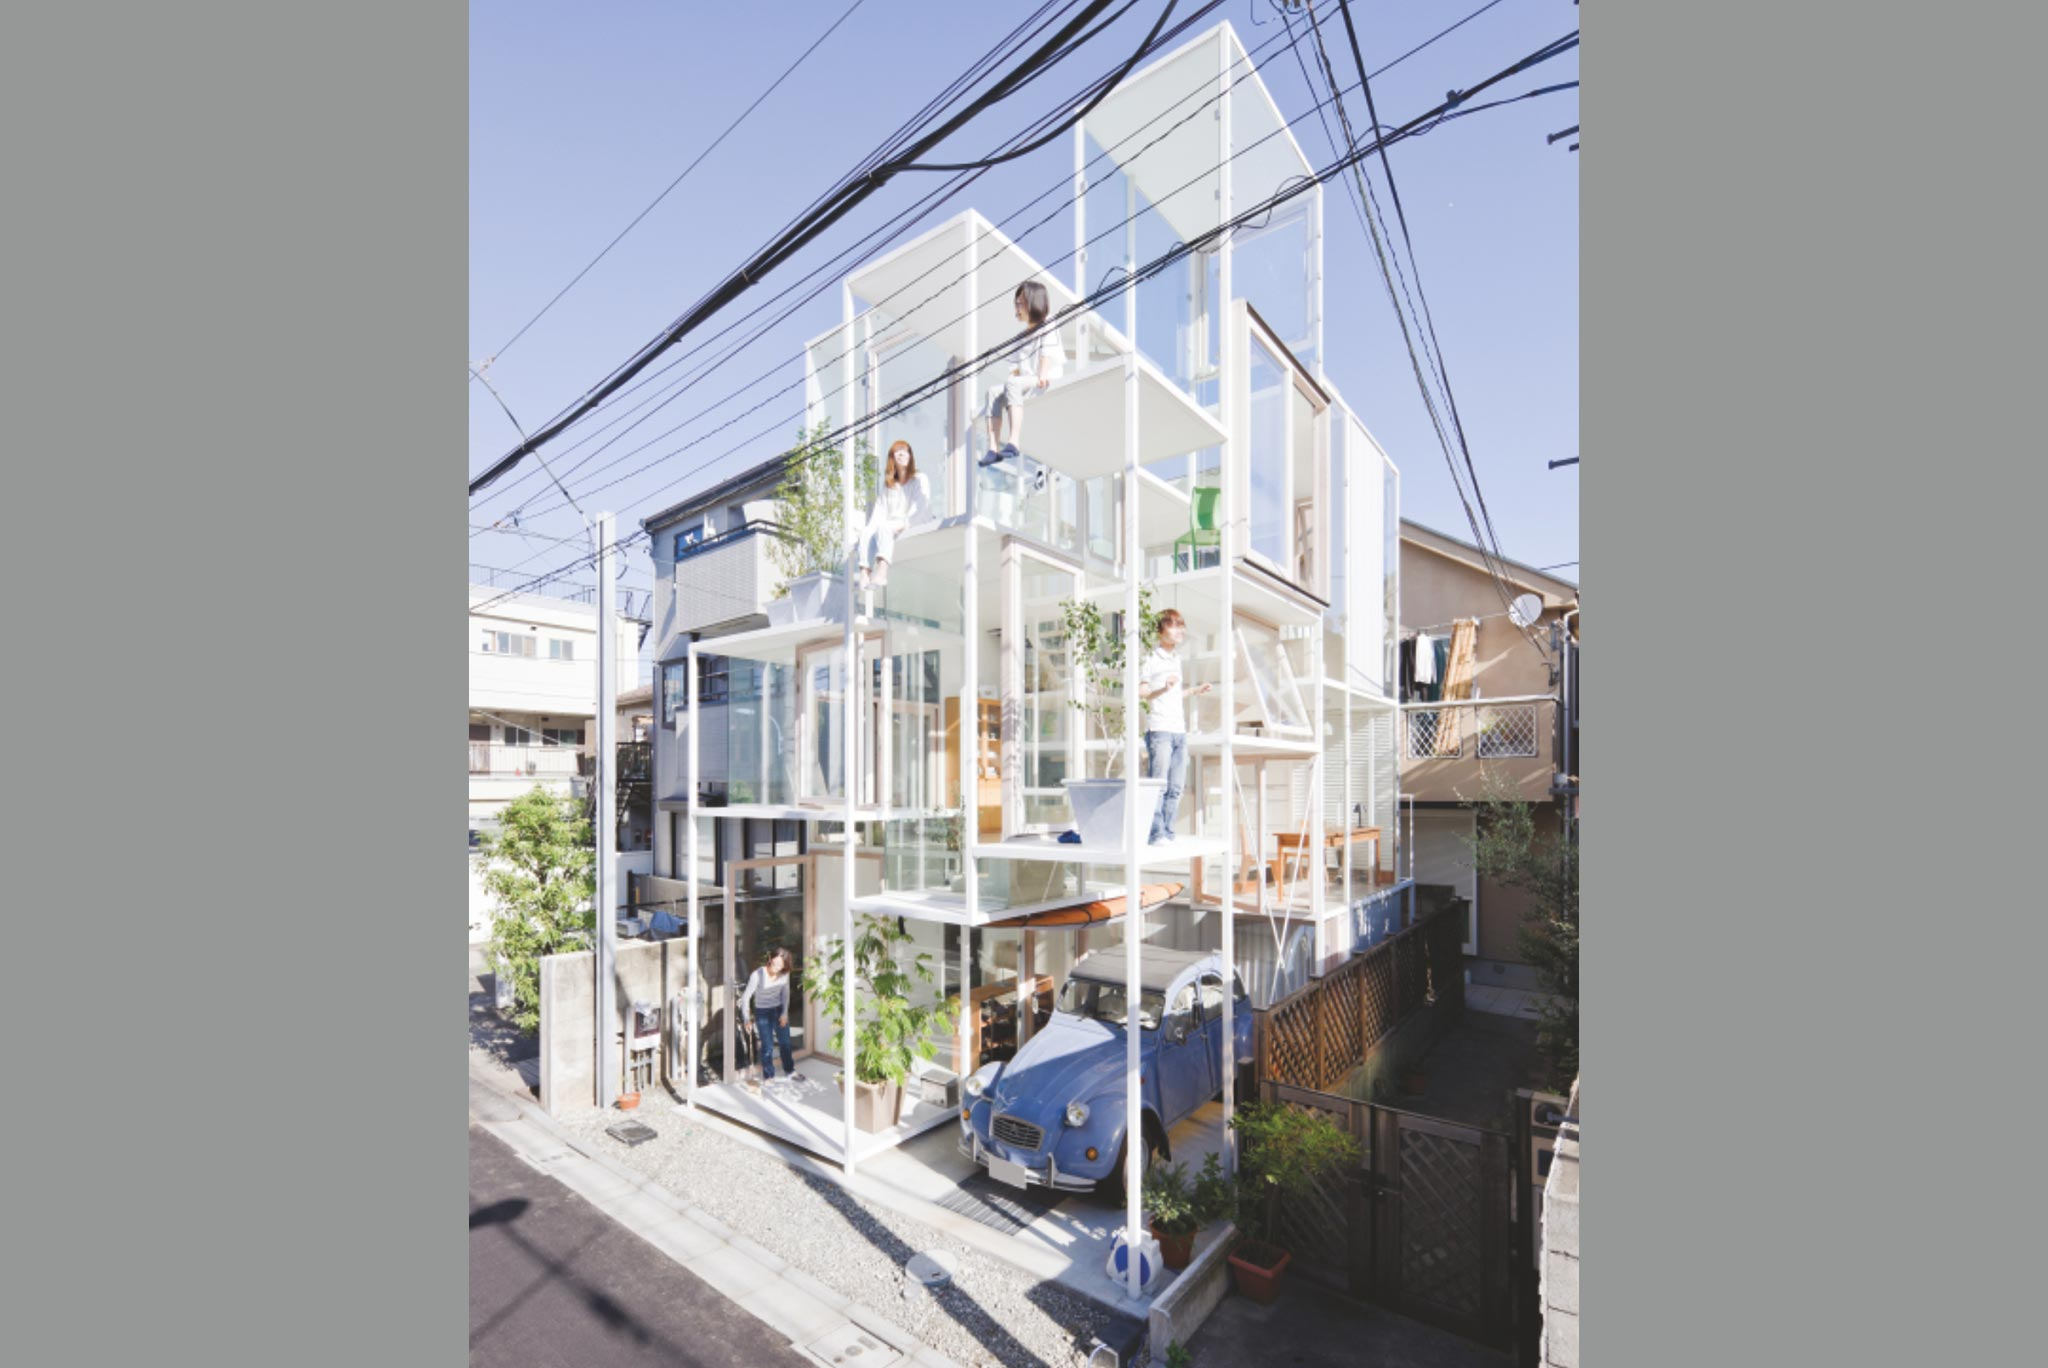 House like a Single Tree, Tokyo Photo Credit © IWAN BAAN